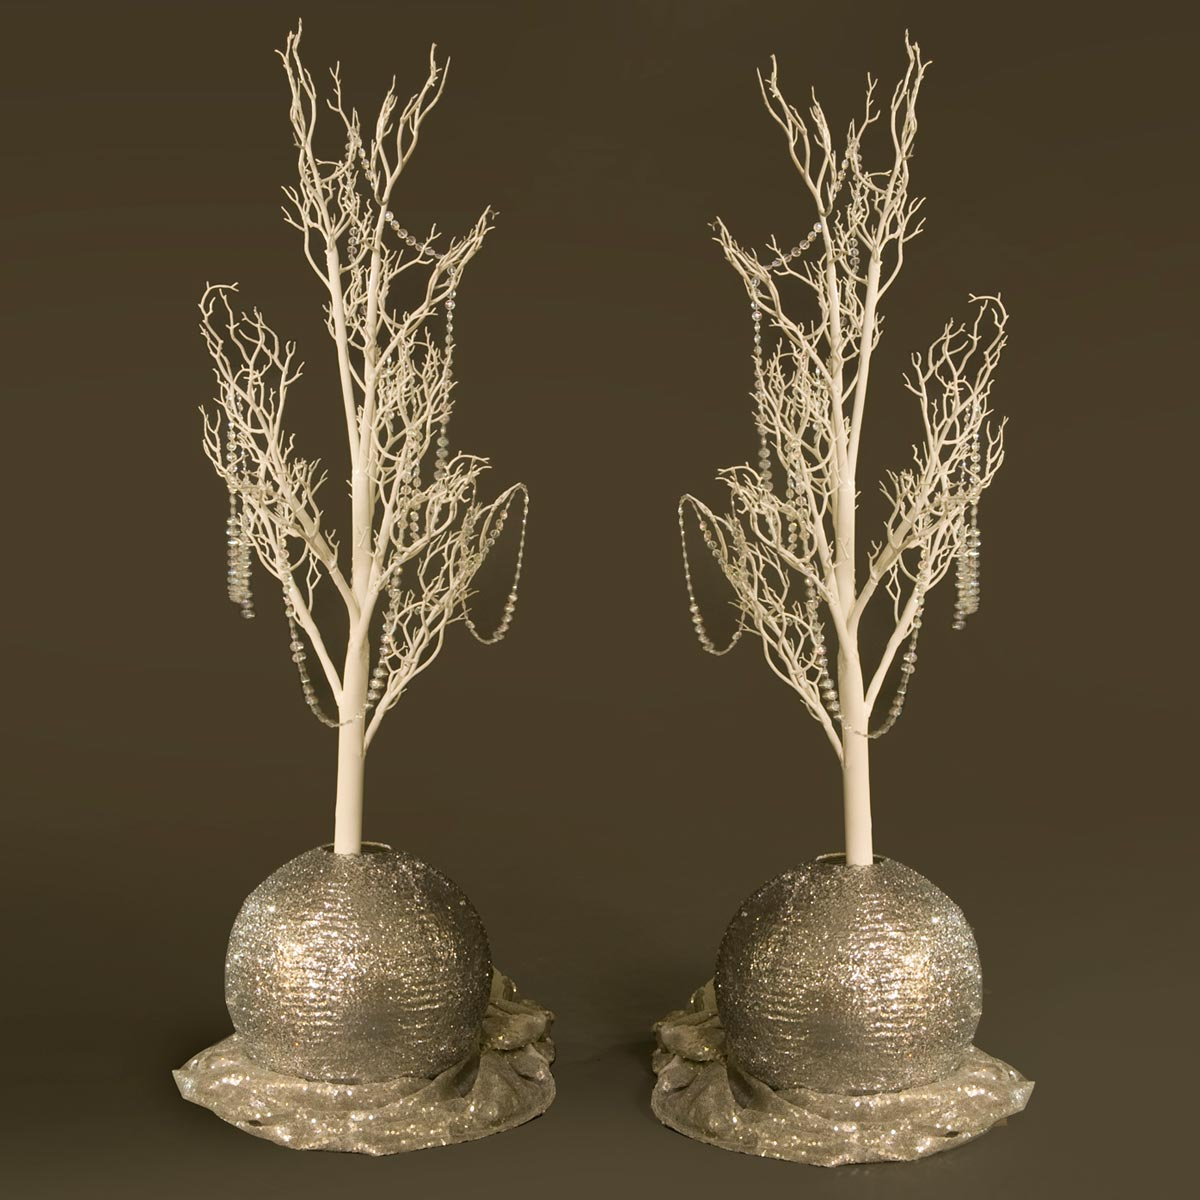 Razzle Dazzle Silver Centerpieces Kit (set of 2)